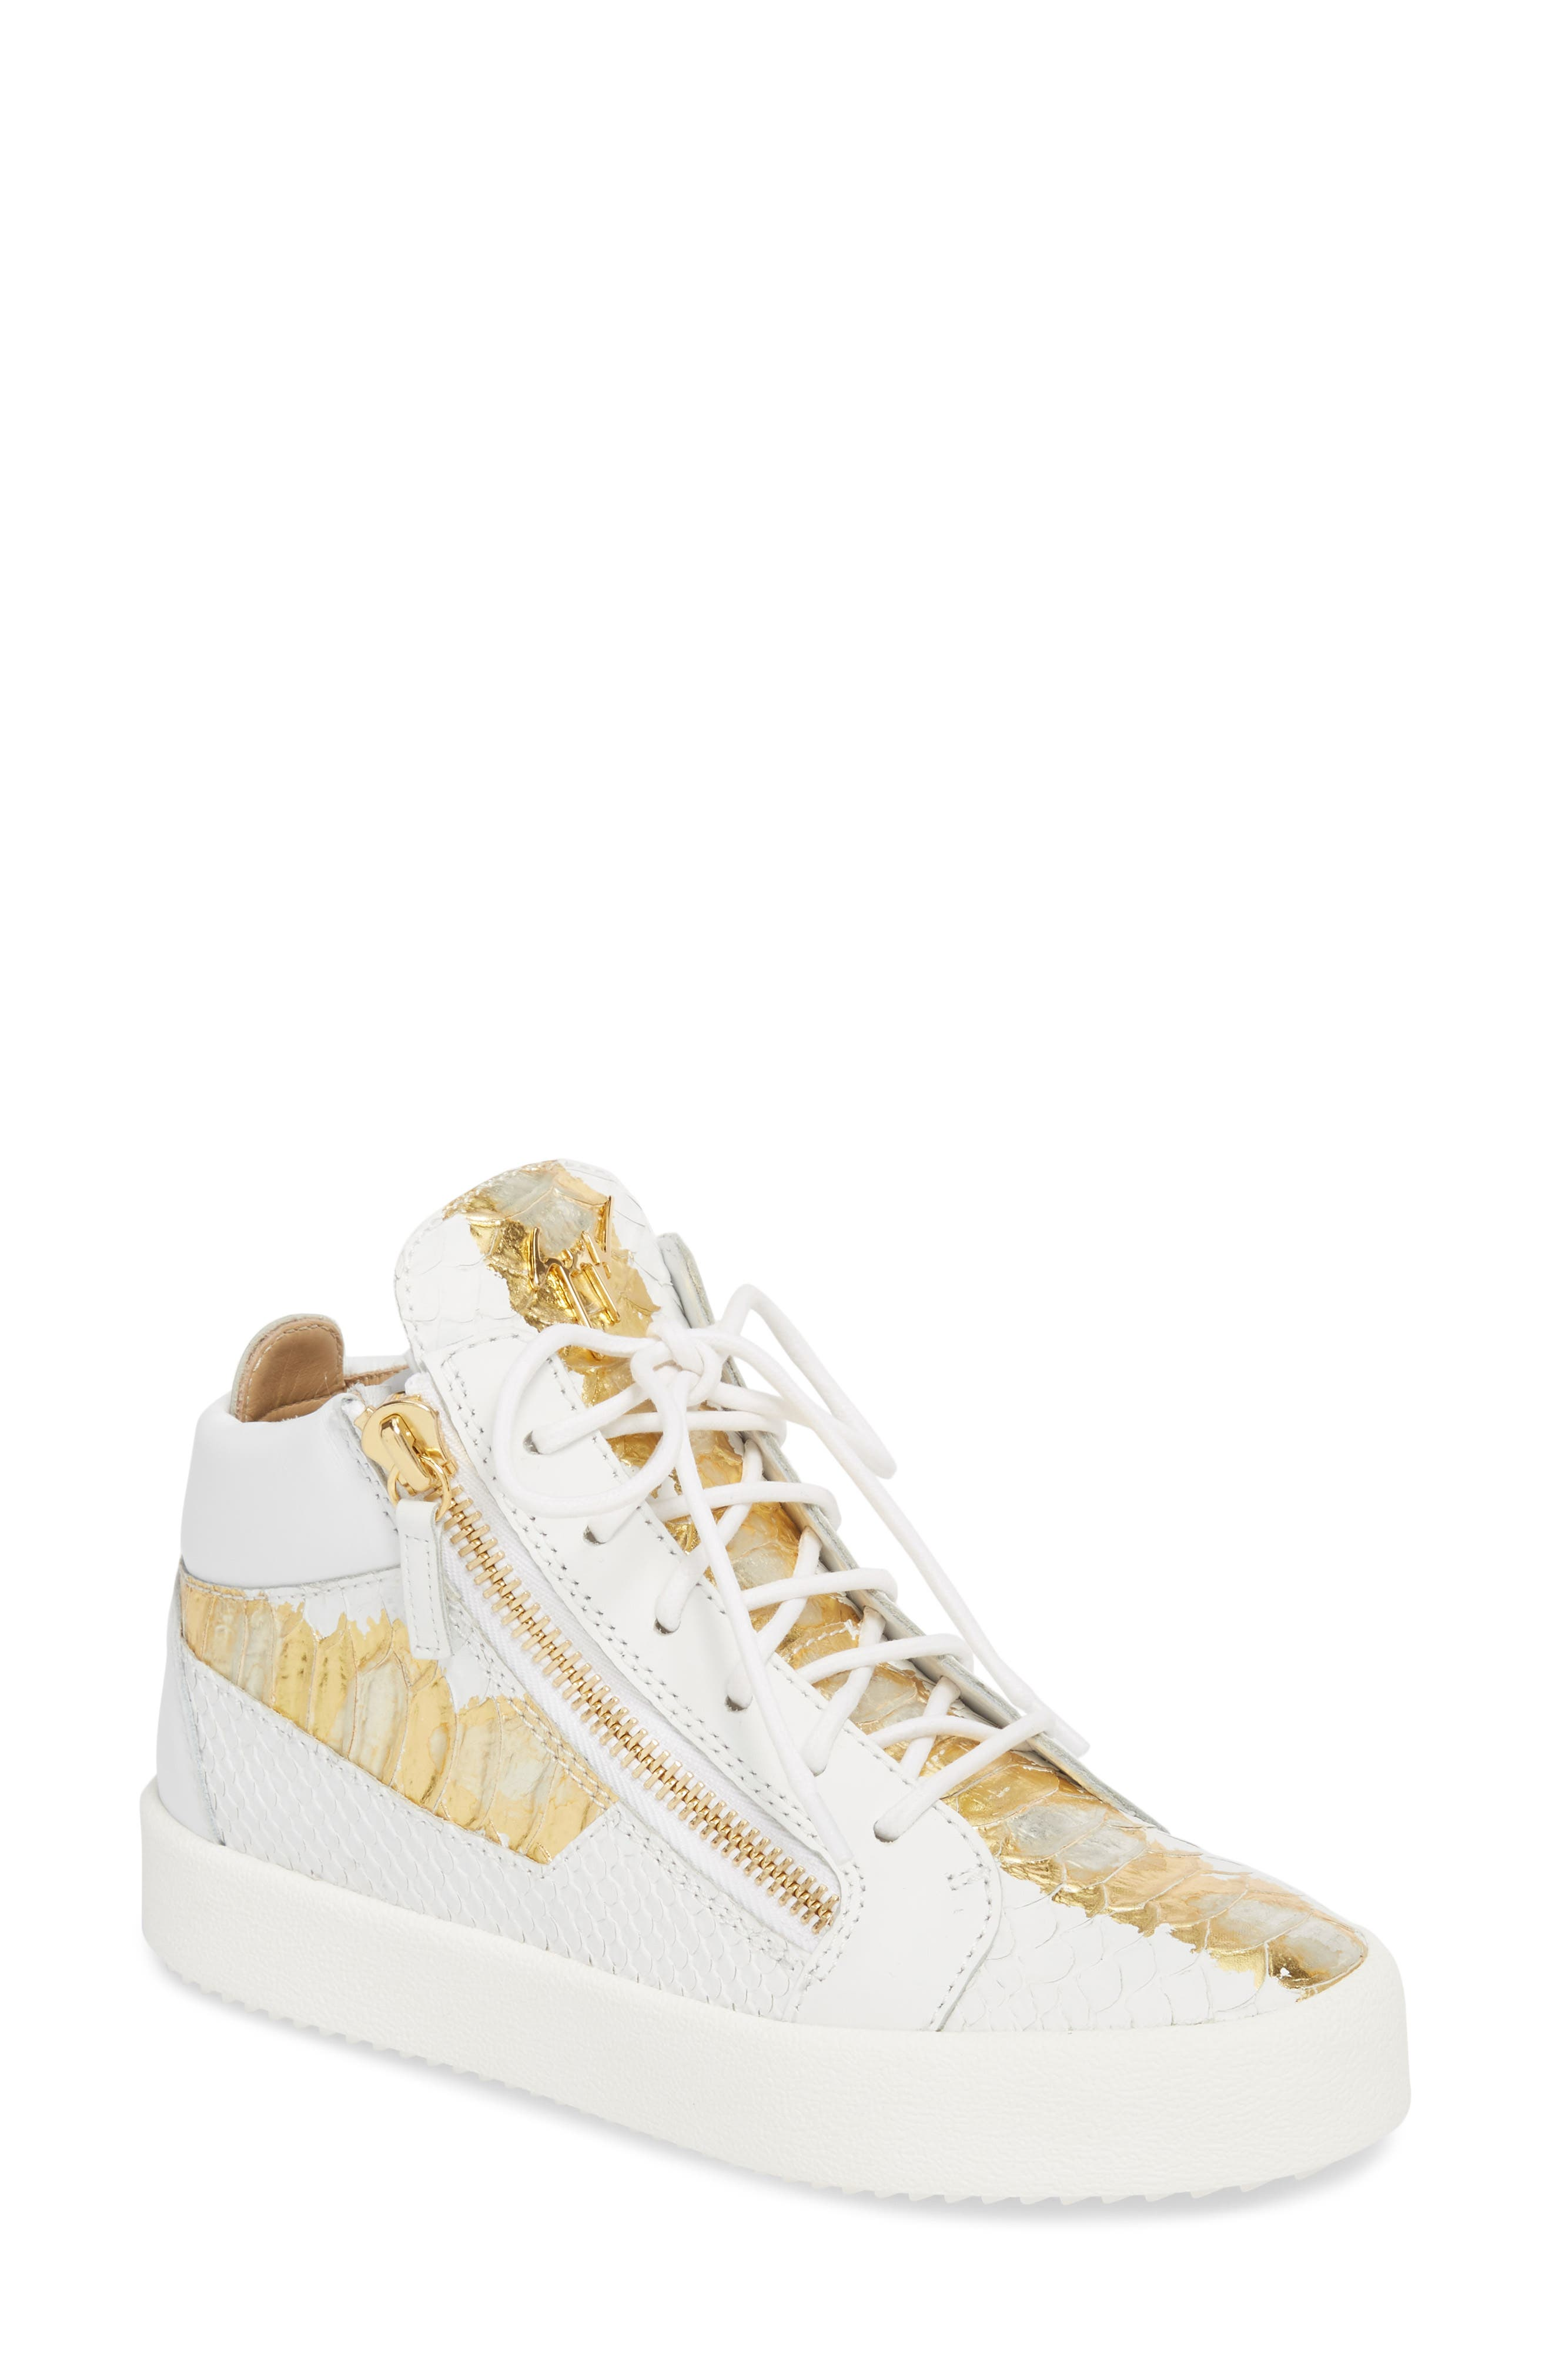 May London Mid Top Sneaker,                             Main thumbnail 1, color,                             White/ Gold